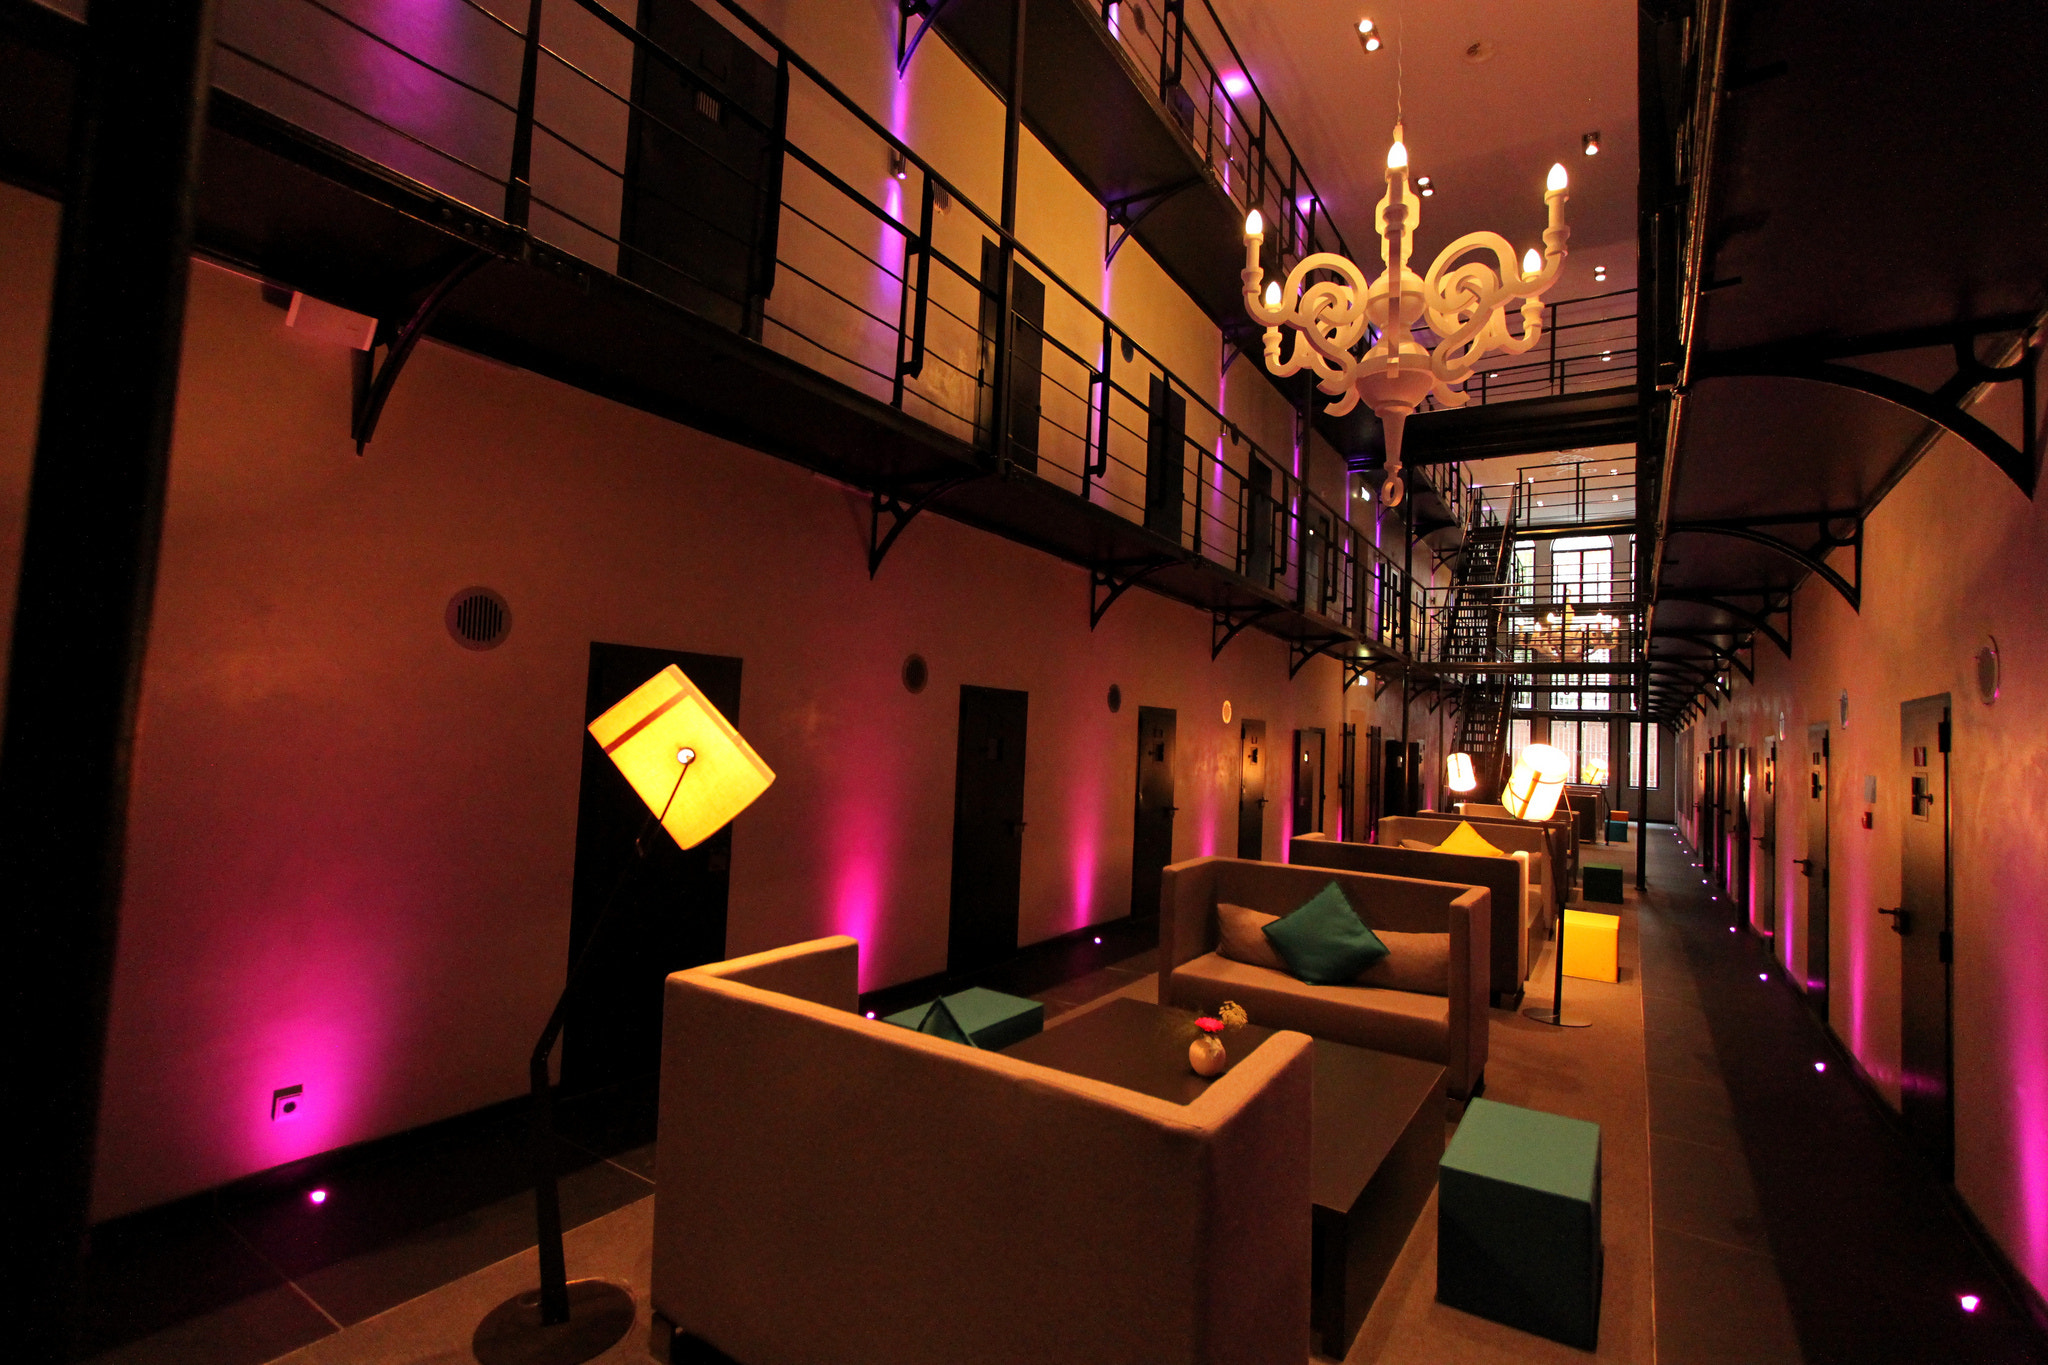 Photograph 'Prison Hotel'  by Frits de Jong on 500px